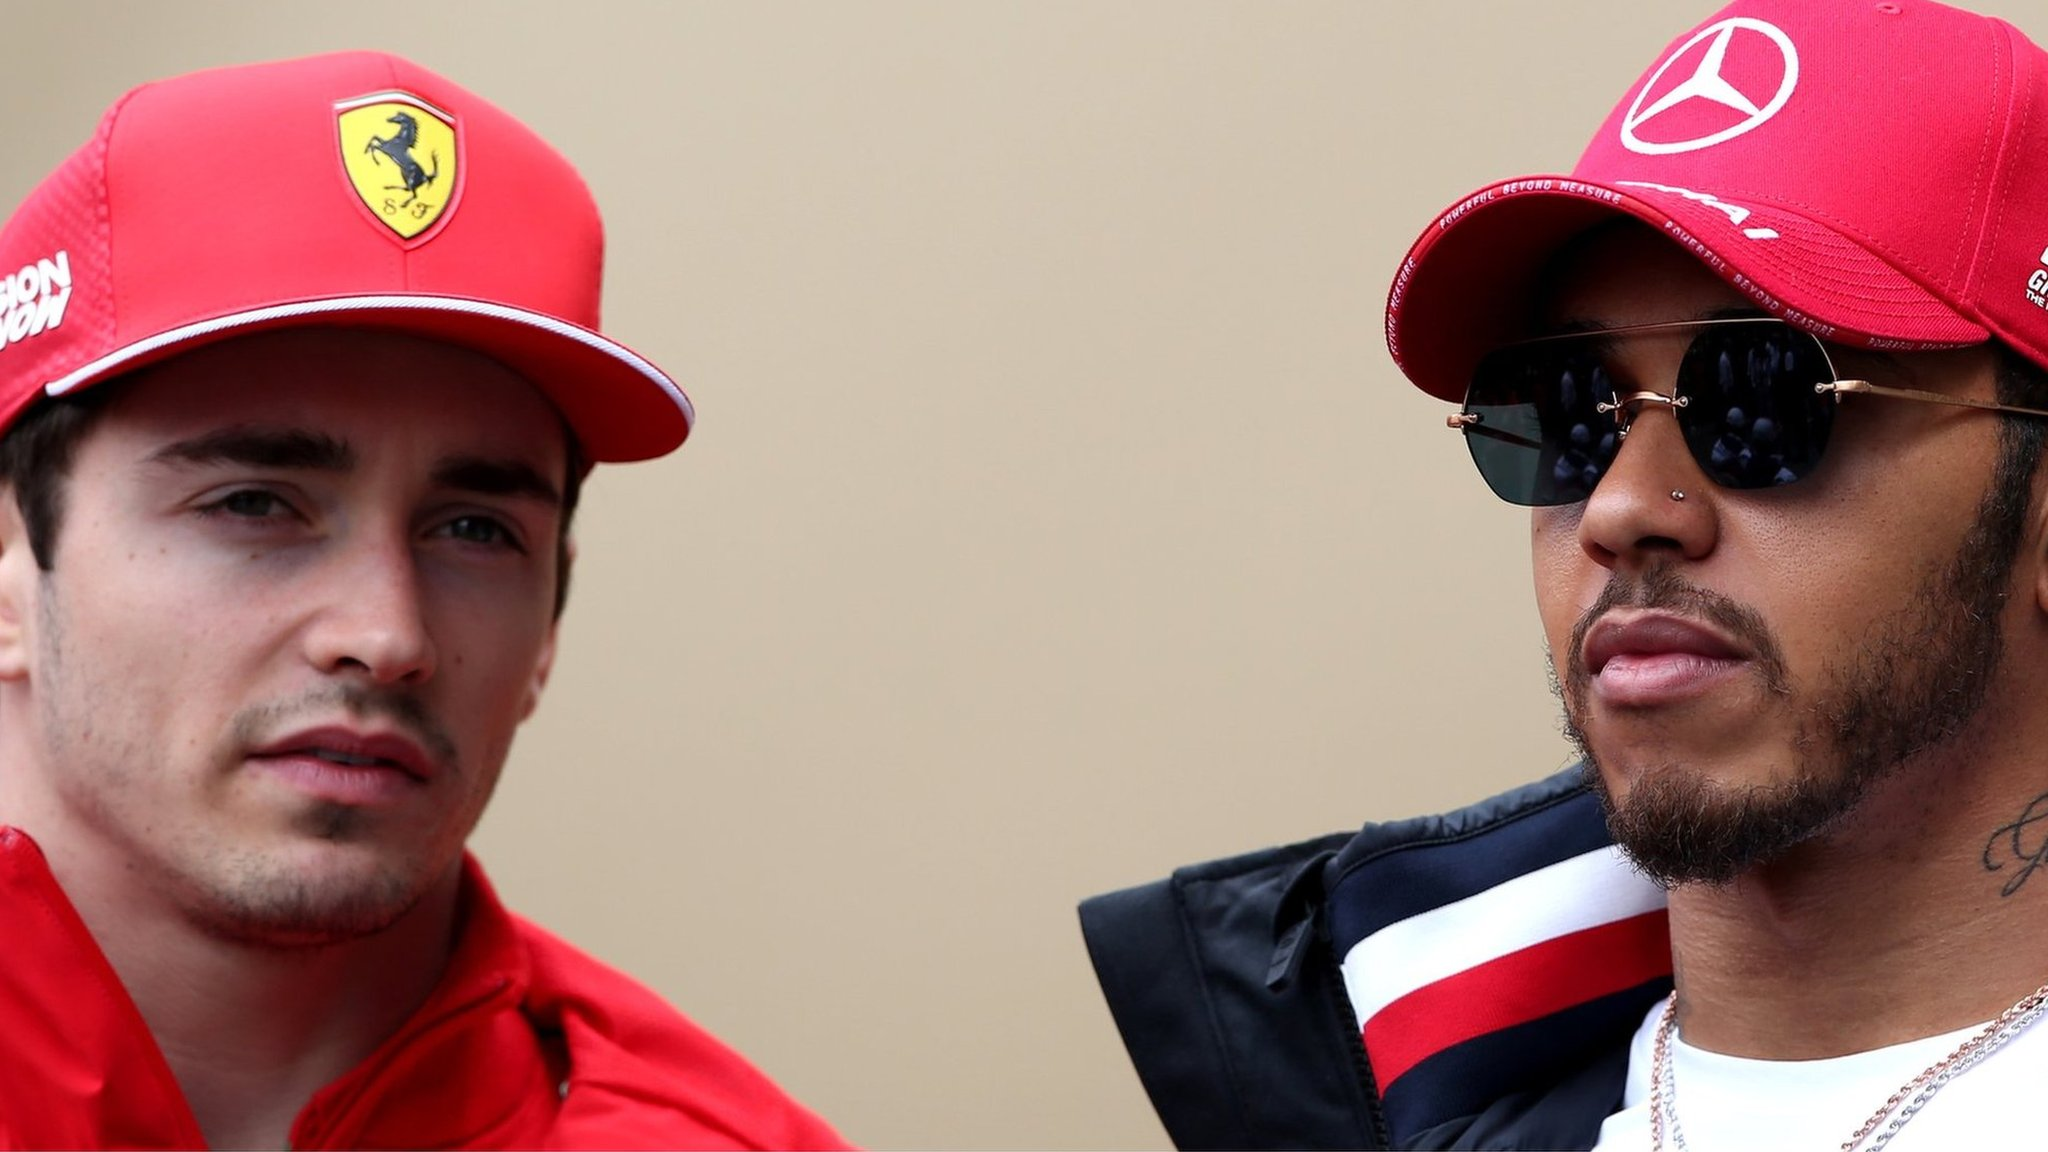 Lewis Hamilton: 'I can see myself' in Charles Leclerc